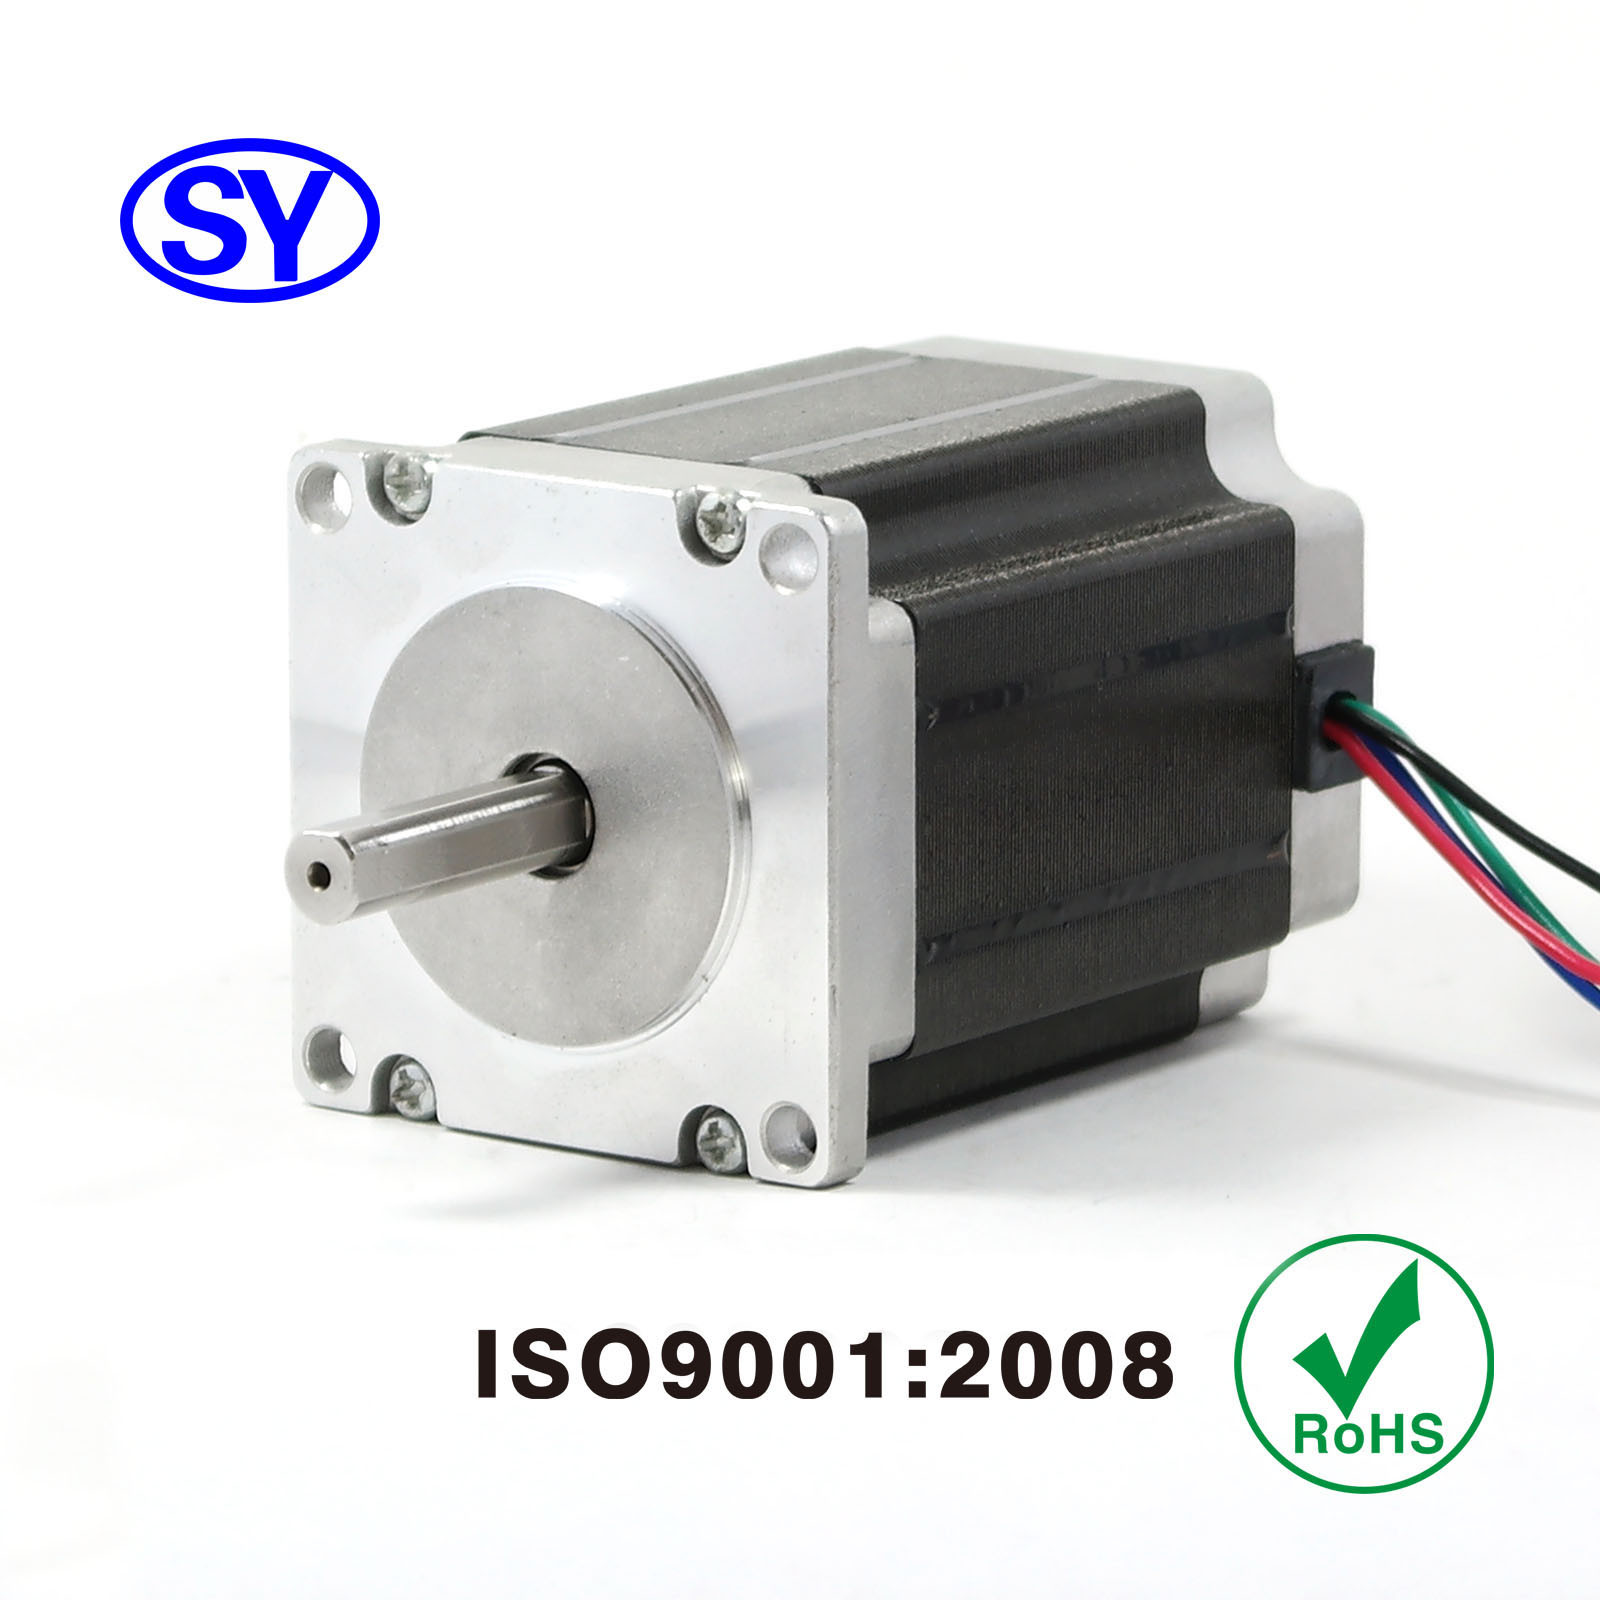 60mm Ultra-Smooth Movement Stepper Electrical Motor